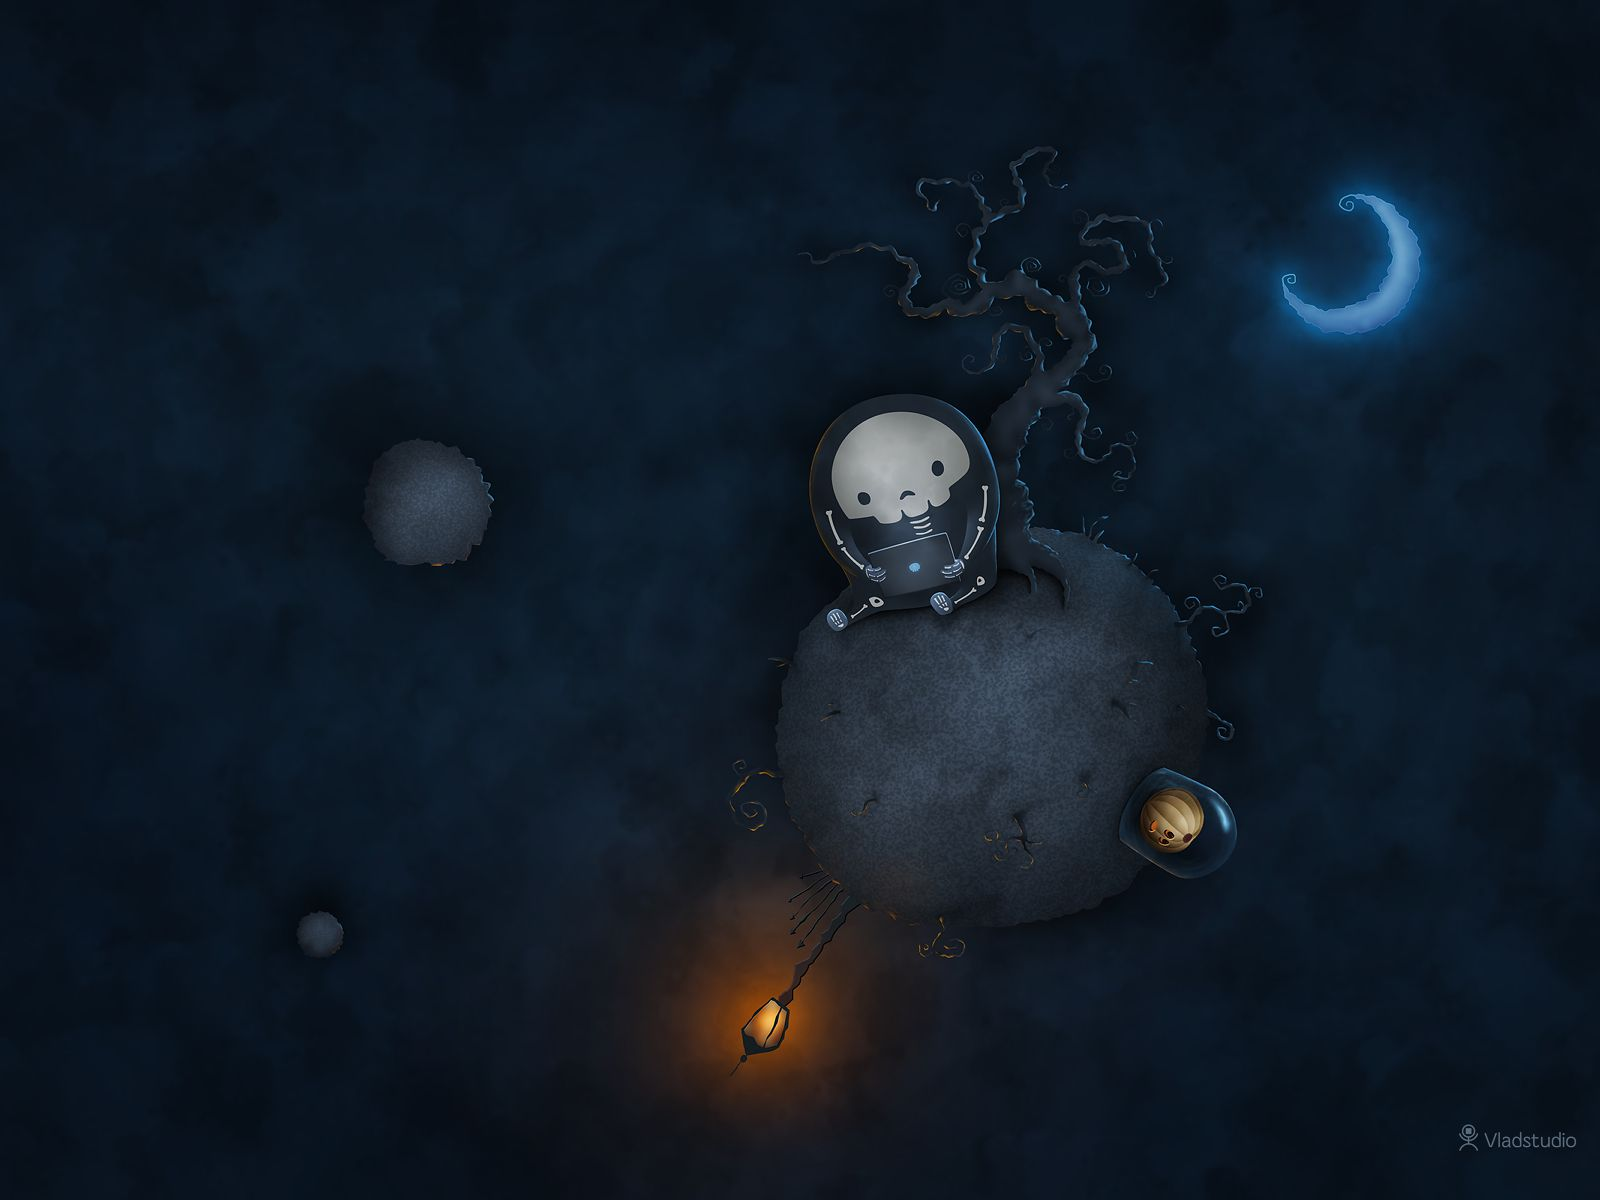 A skeleton by sitting on his own planet.